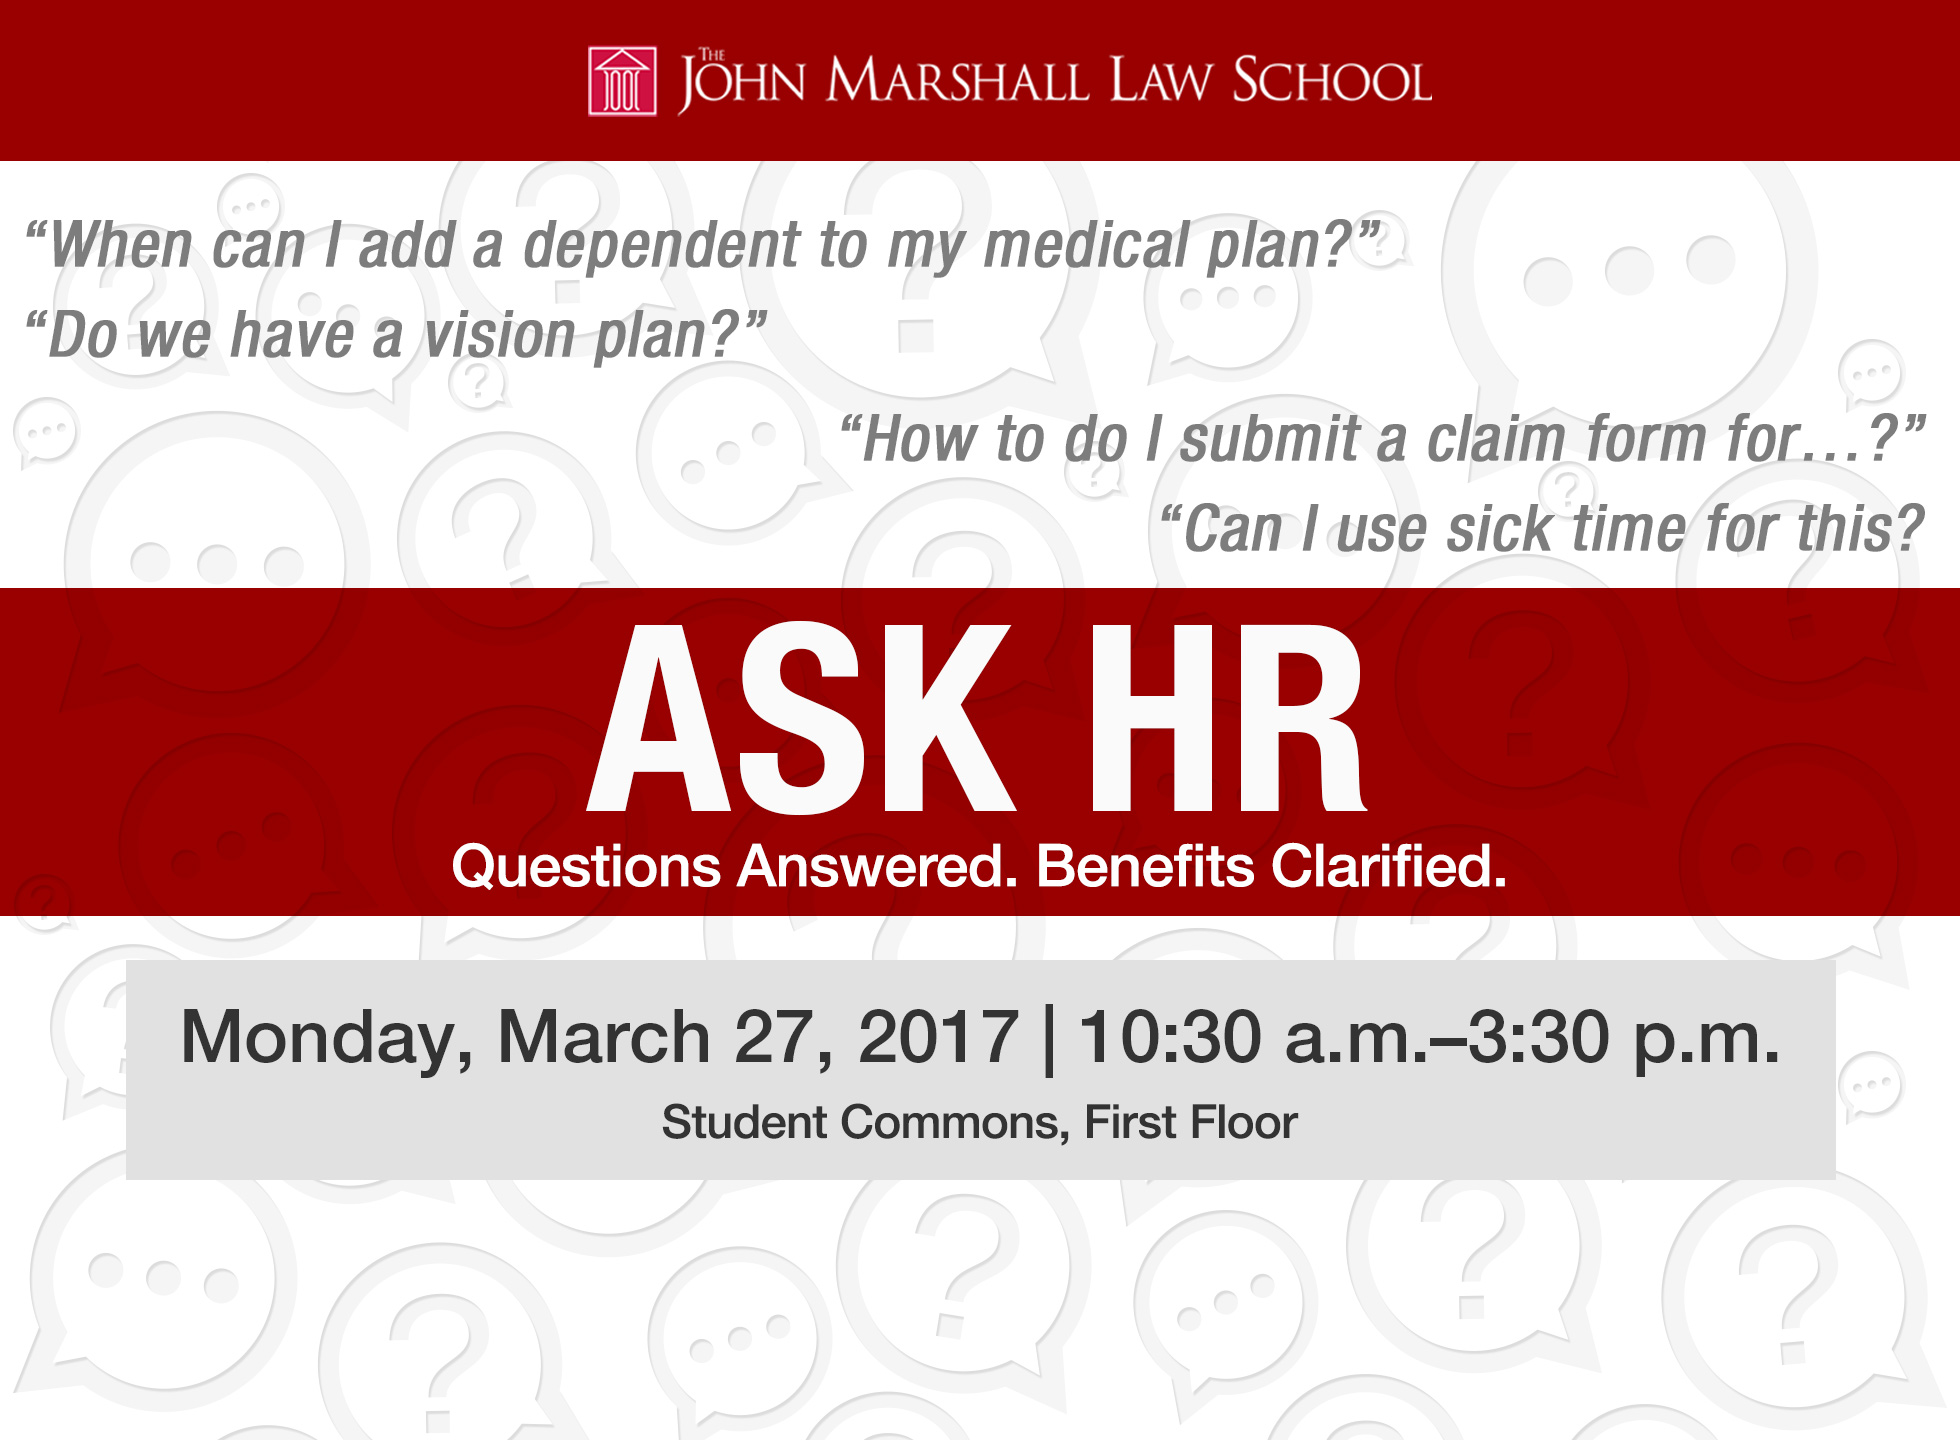 HR Digital Monitor - Designed and created custom repeating pattern for the background of this digital monitor ad to be broadcast throughout The John Marshall Law School and drive attendance to the HR event.